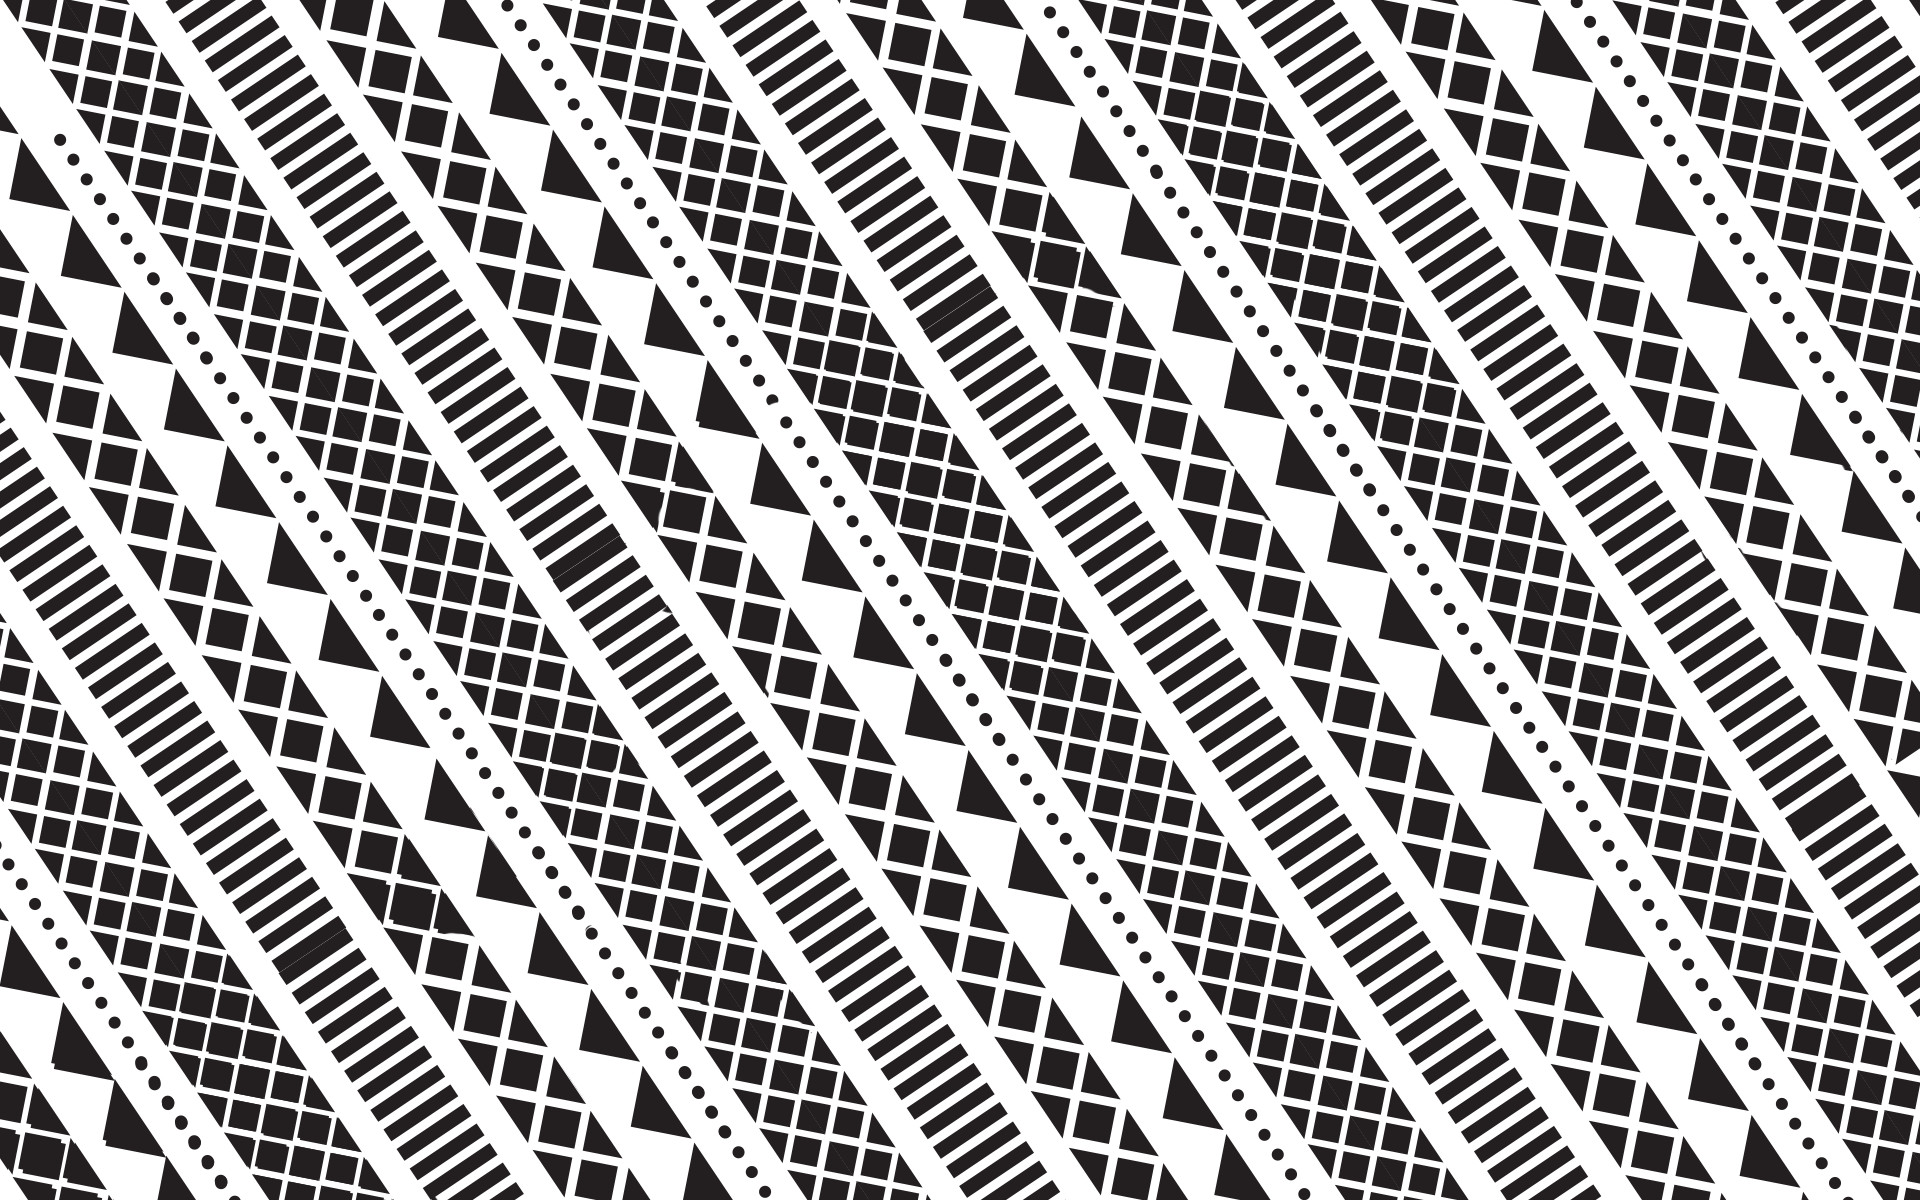 1920x1200 - Cool Tribal Backgrounds 42